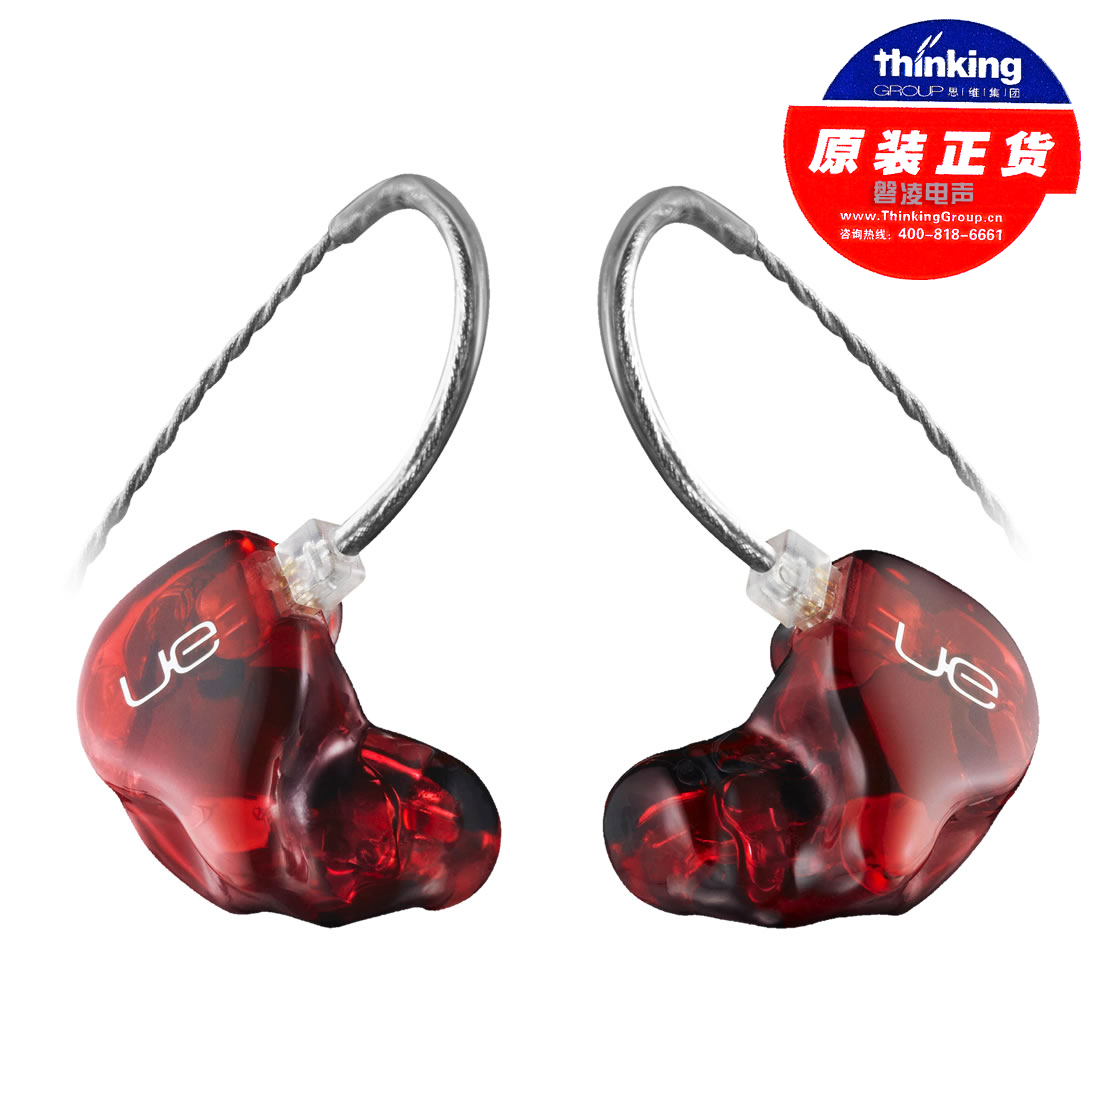 Ultimate ears ue ue18 pro 4pro 5pro 10pro 11pro earplugs